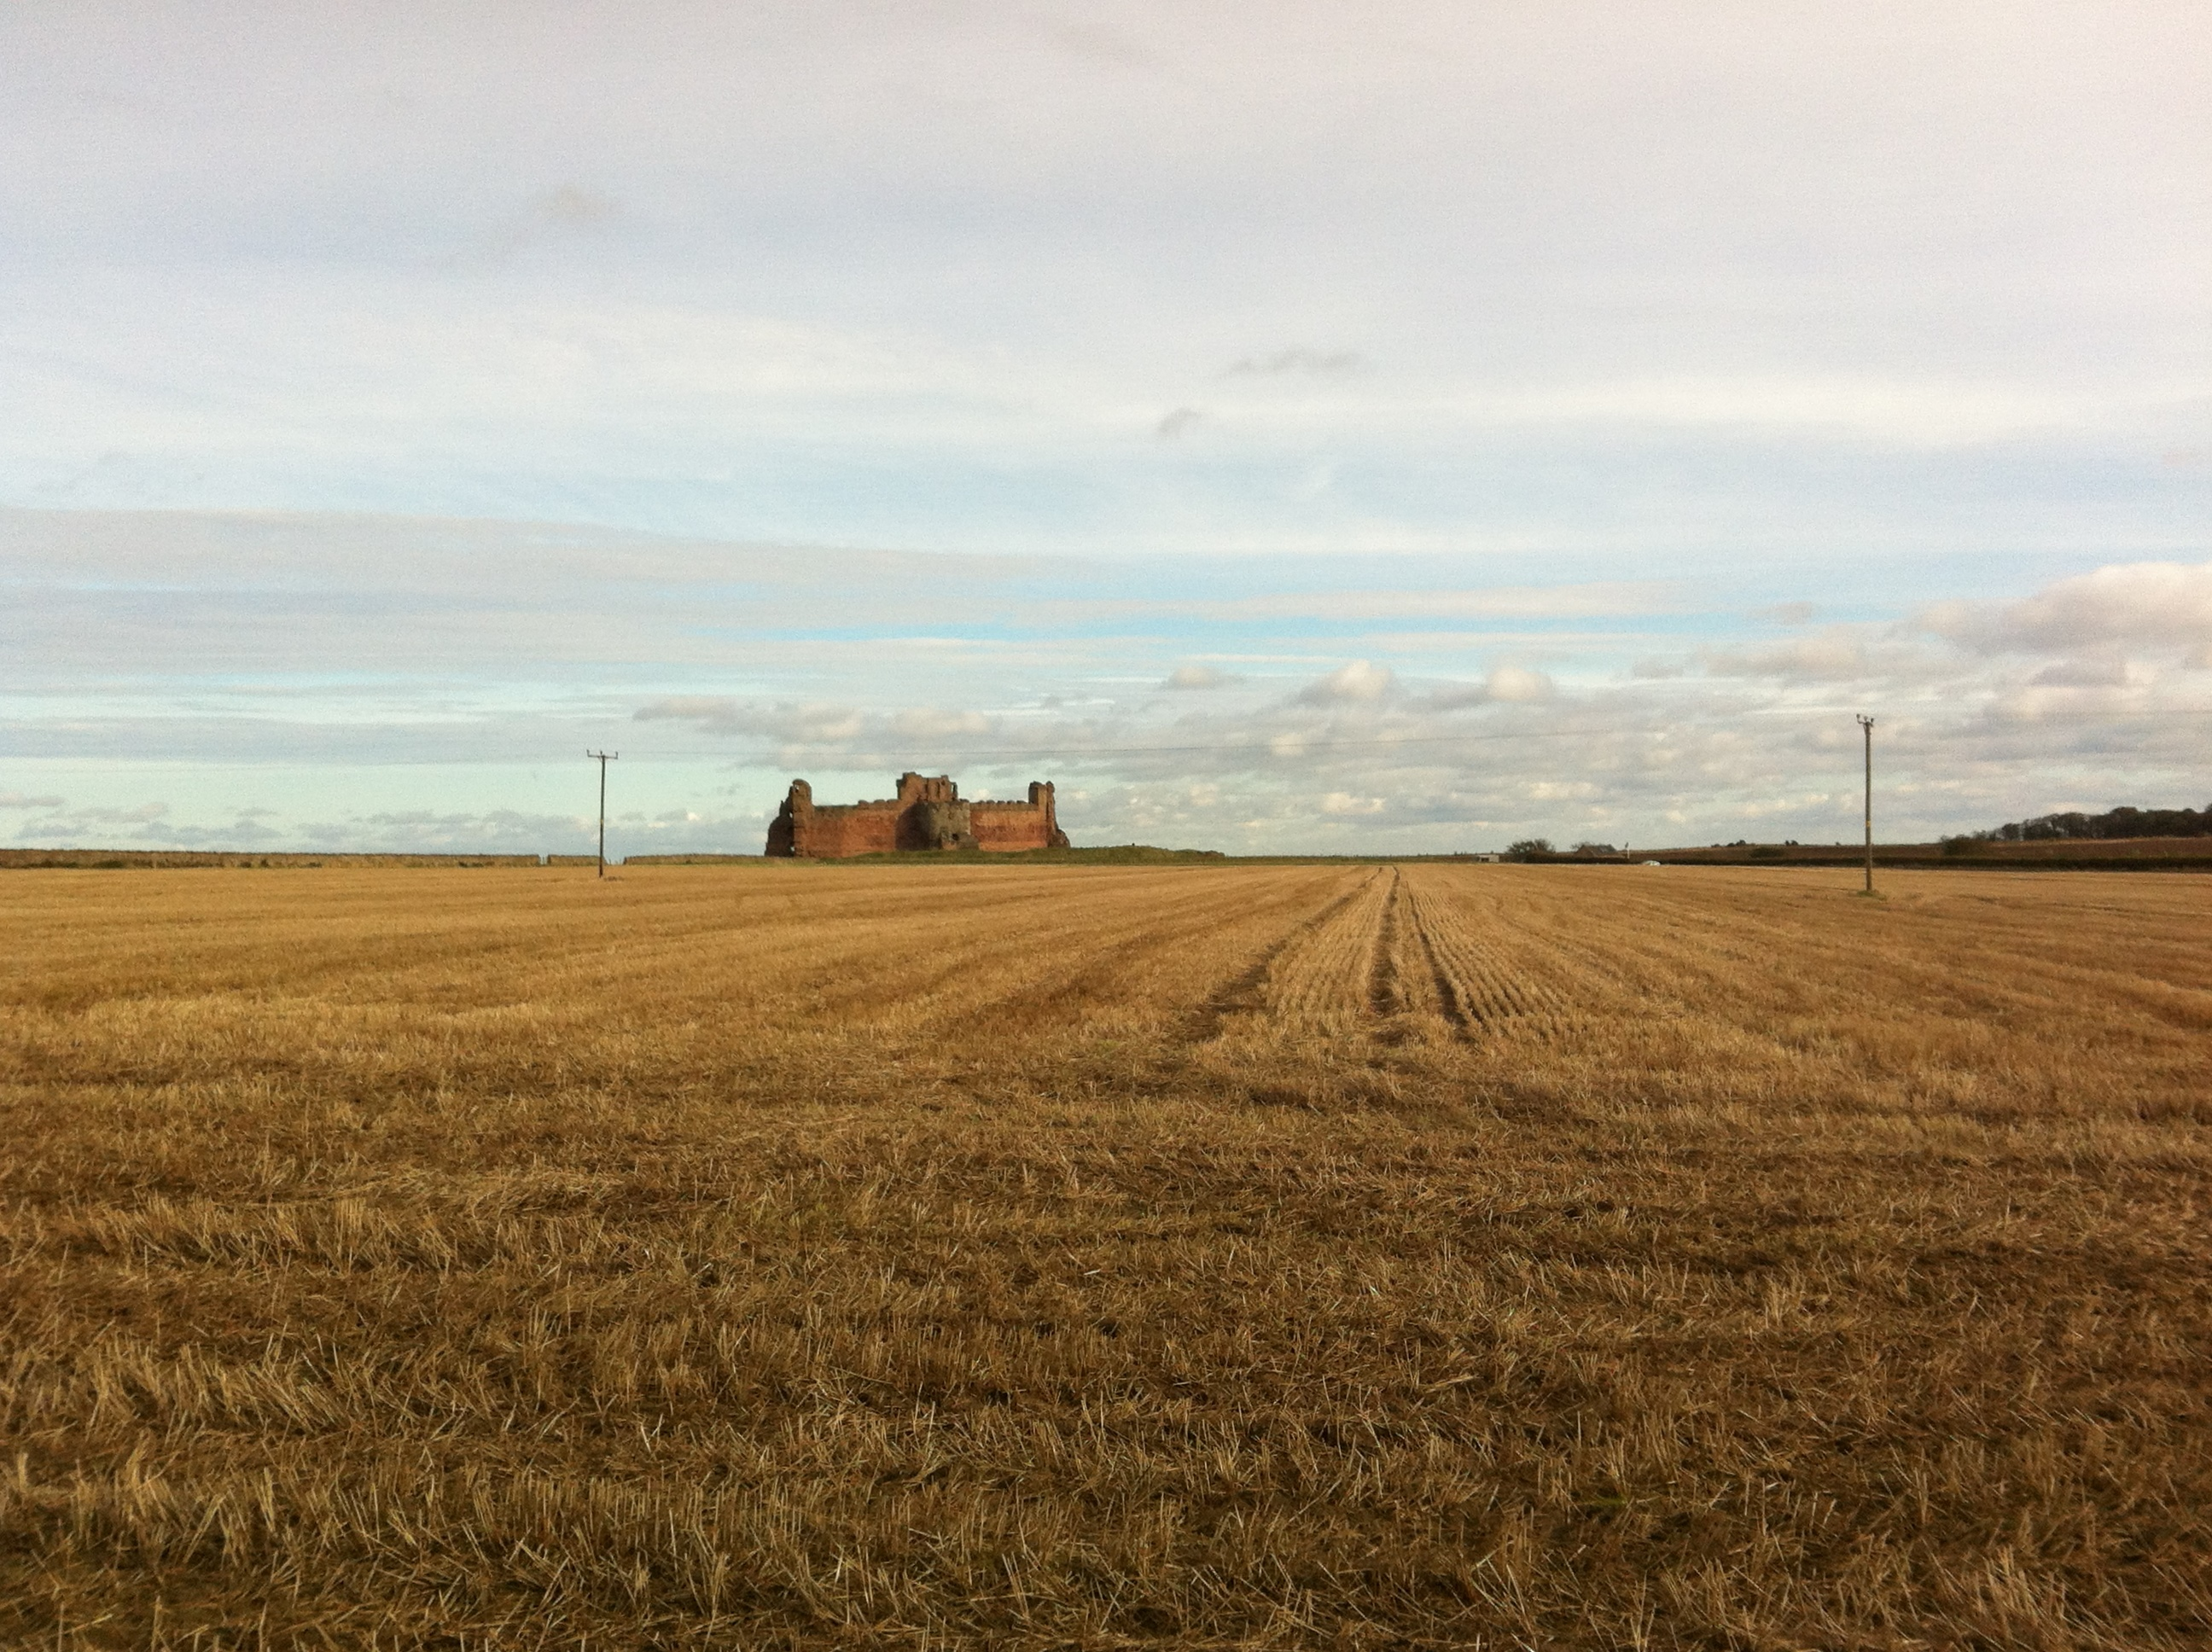 A photo taken by Hayley on her walk to Tantallon from the road. It shows the almost red castle in the distance, sitting in front of it is a large golden field of crops with a moody sky above.